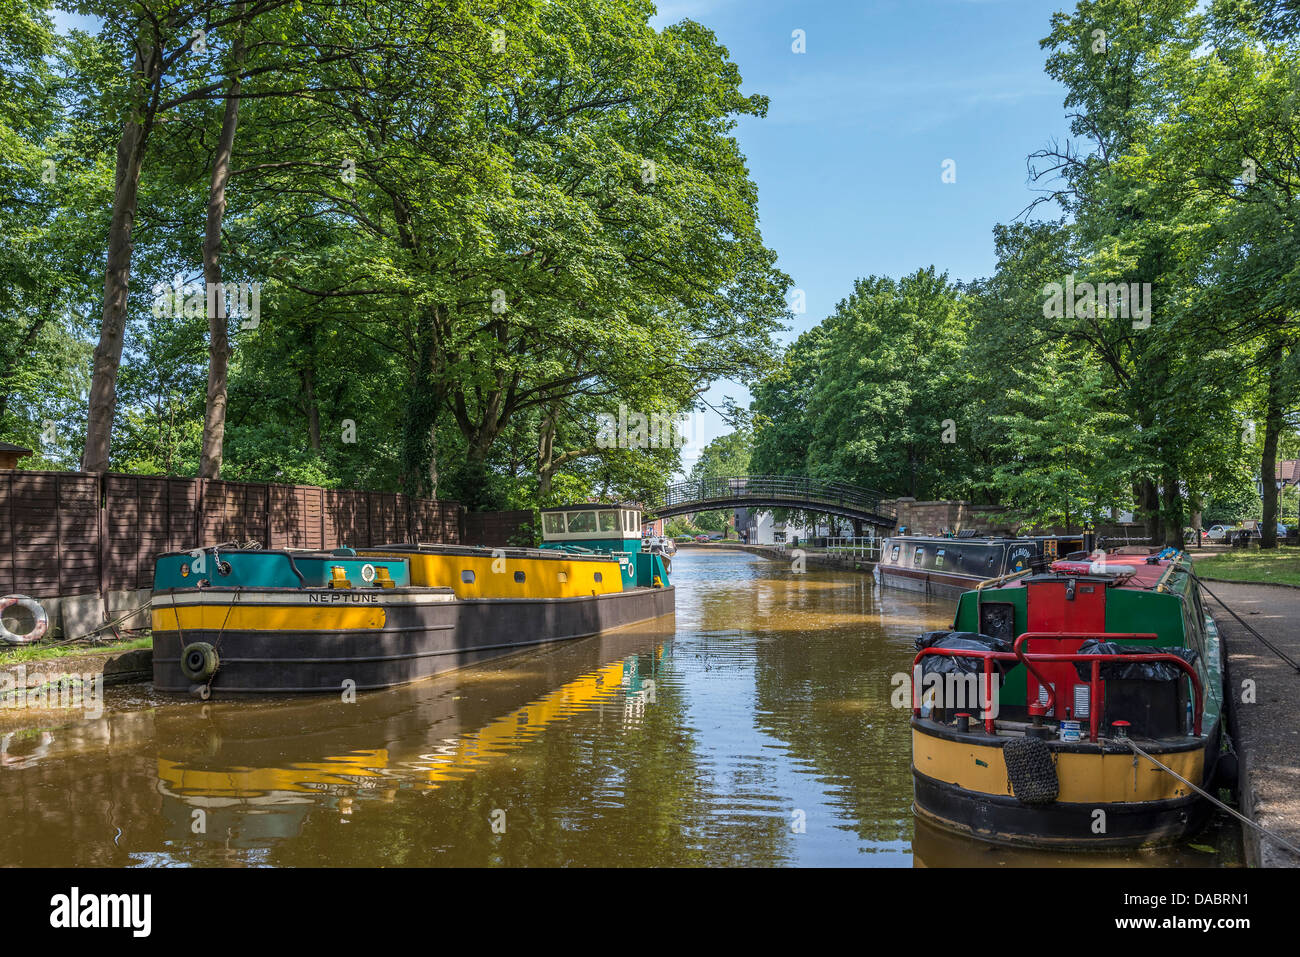 The Bridgewater canal at Worsley , Manchester, North West England. - Stock Image